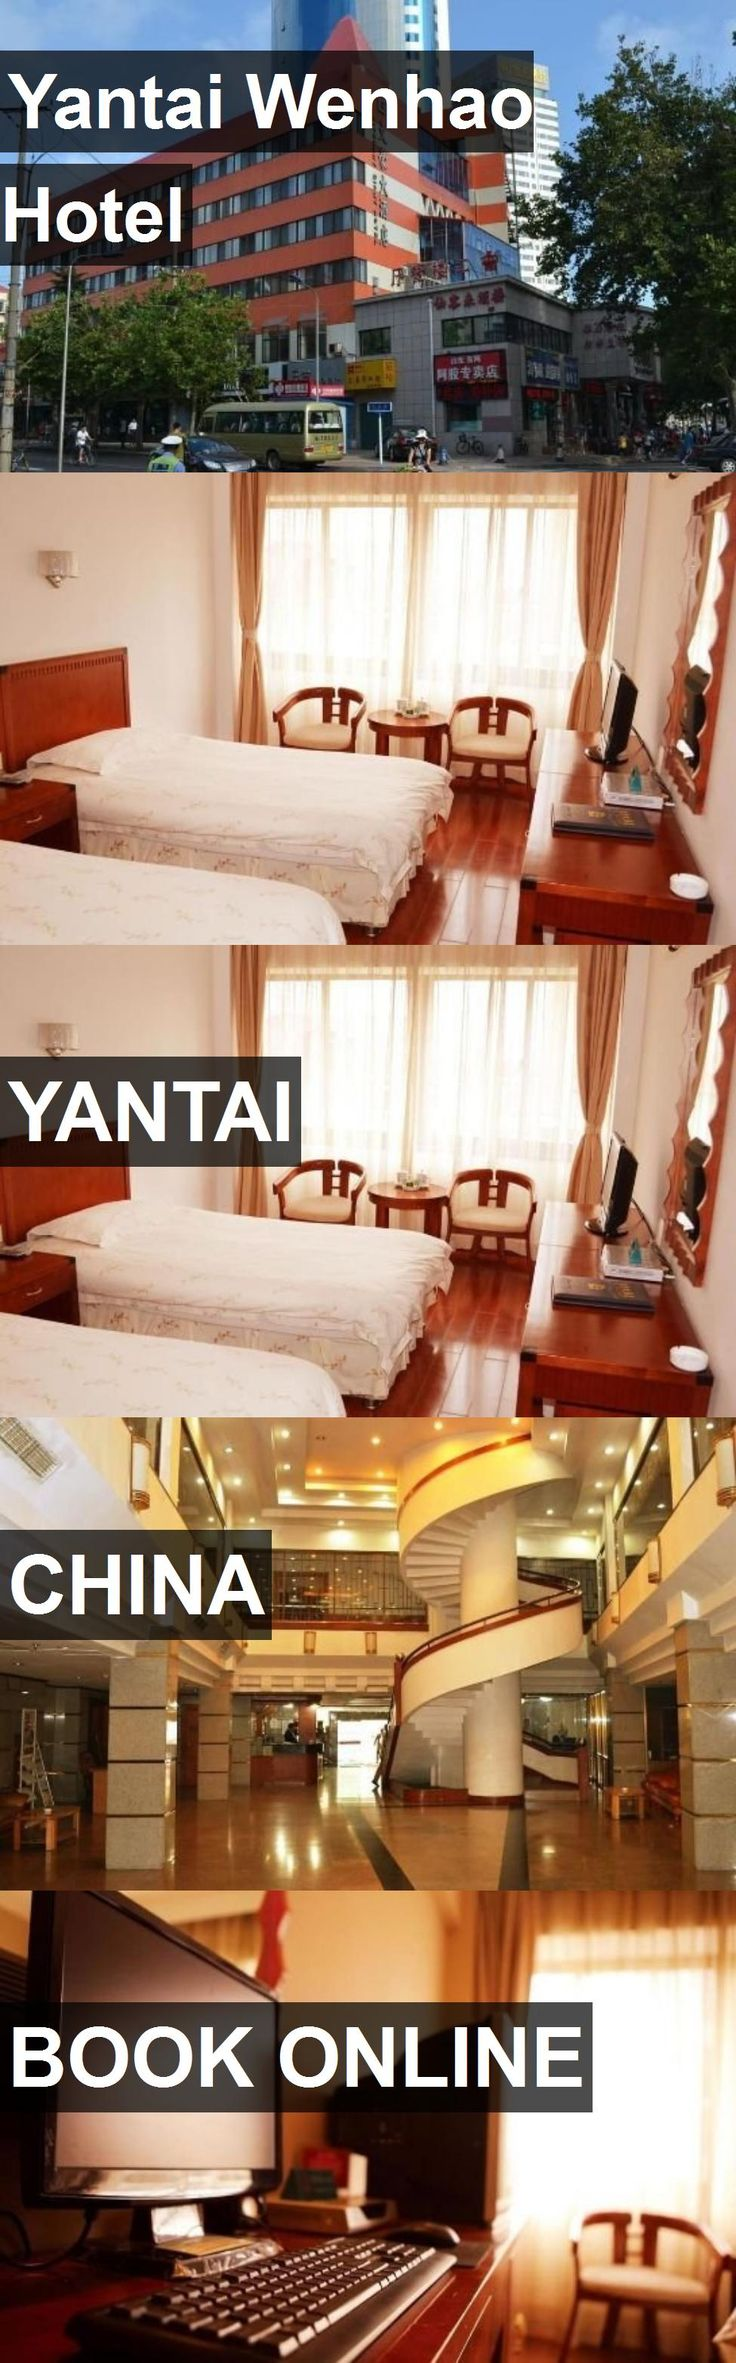 Yantai Wenhao Hotel in Yantai, China. For more information, photos, reviews and best prices please follow the link. #China #Yantai #travel #vacation #hotel